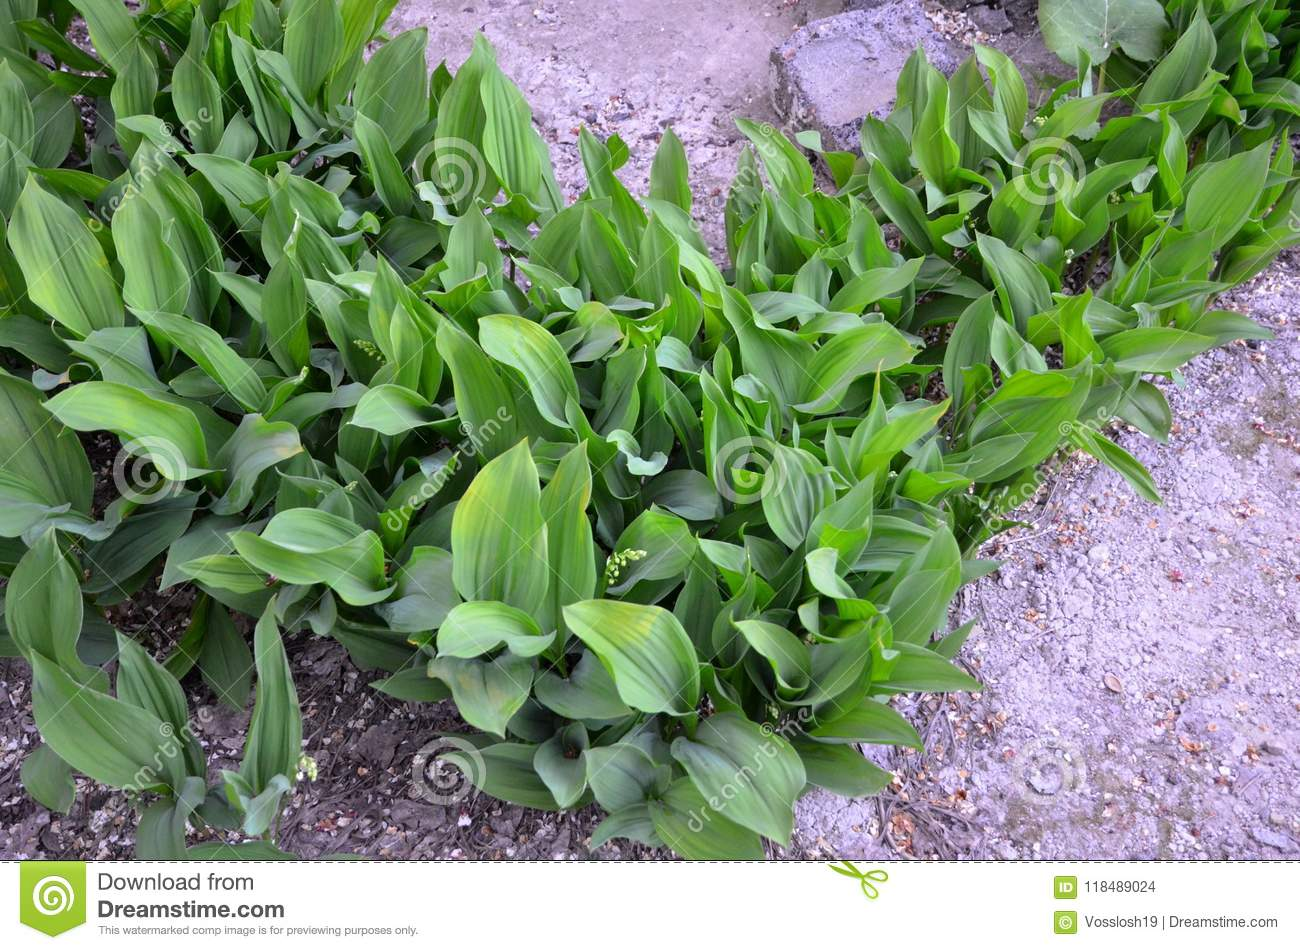 A Flower Bed With Lilies Of The Valley Form Stock Photo Image Of Vegetation Lilies 118489024